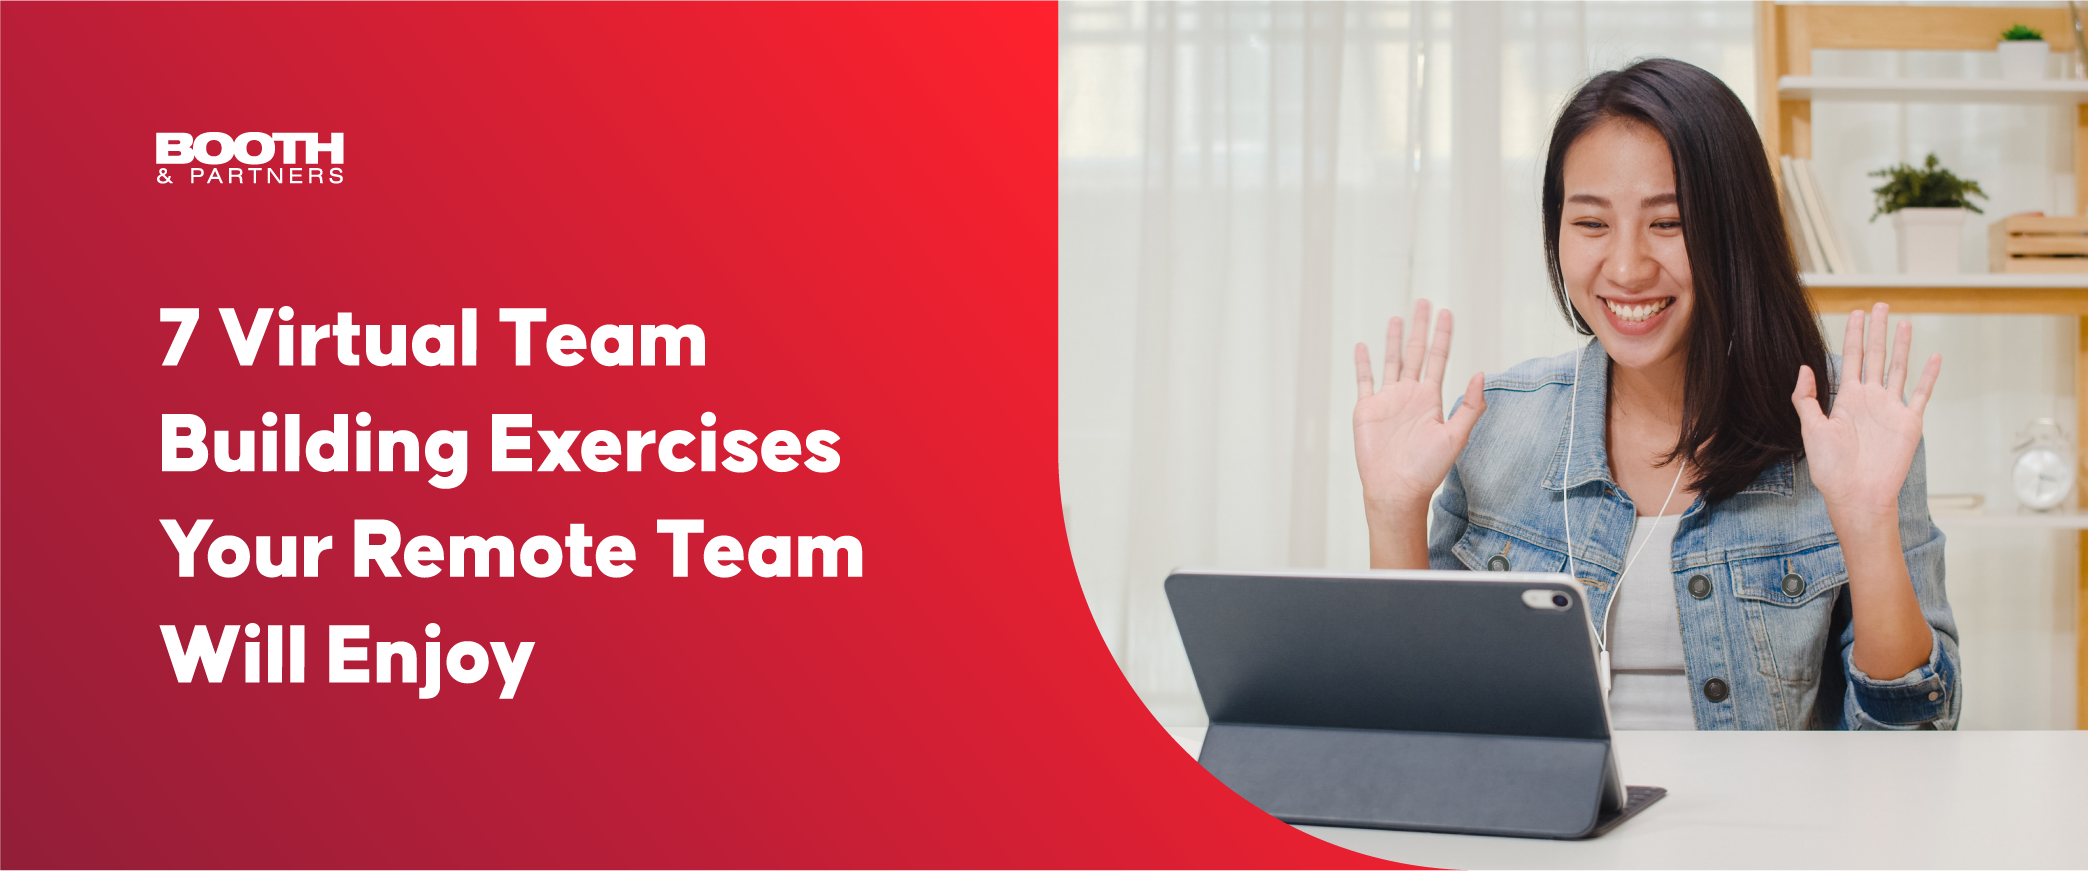 7 Virtual Team Building Exercises Your Remote Team Will Enjoy